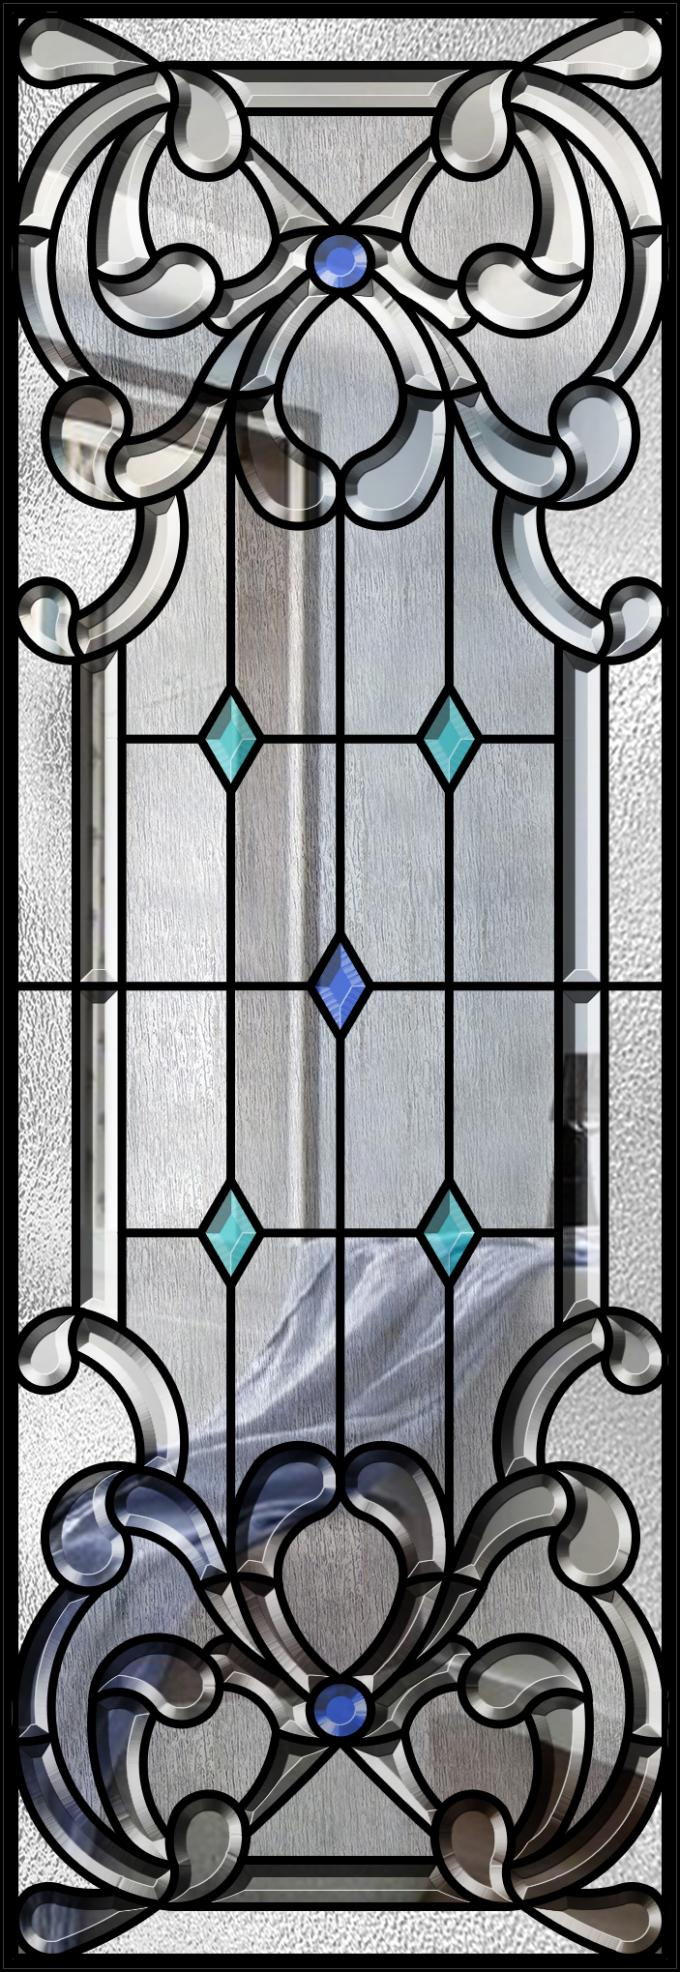 "Wall Strength Elegance Comfort Decorative Glass Panels 22"" * 64"" Steel Frame Material"